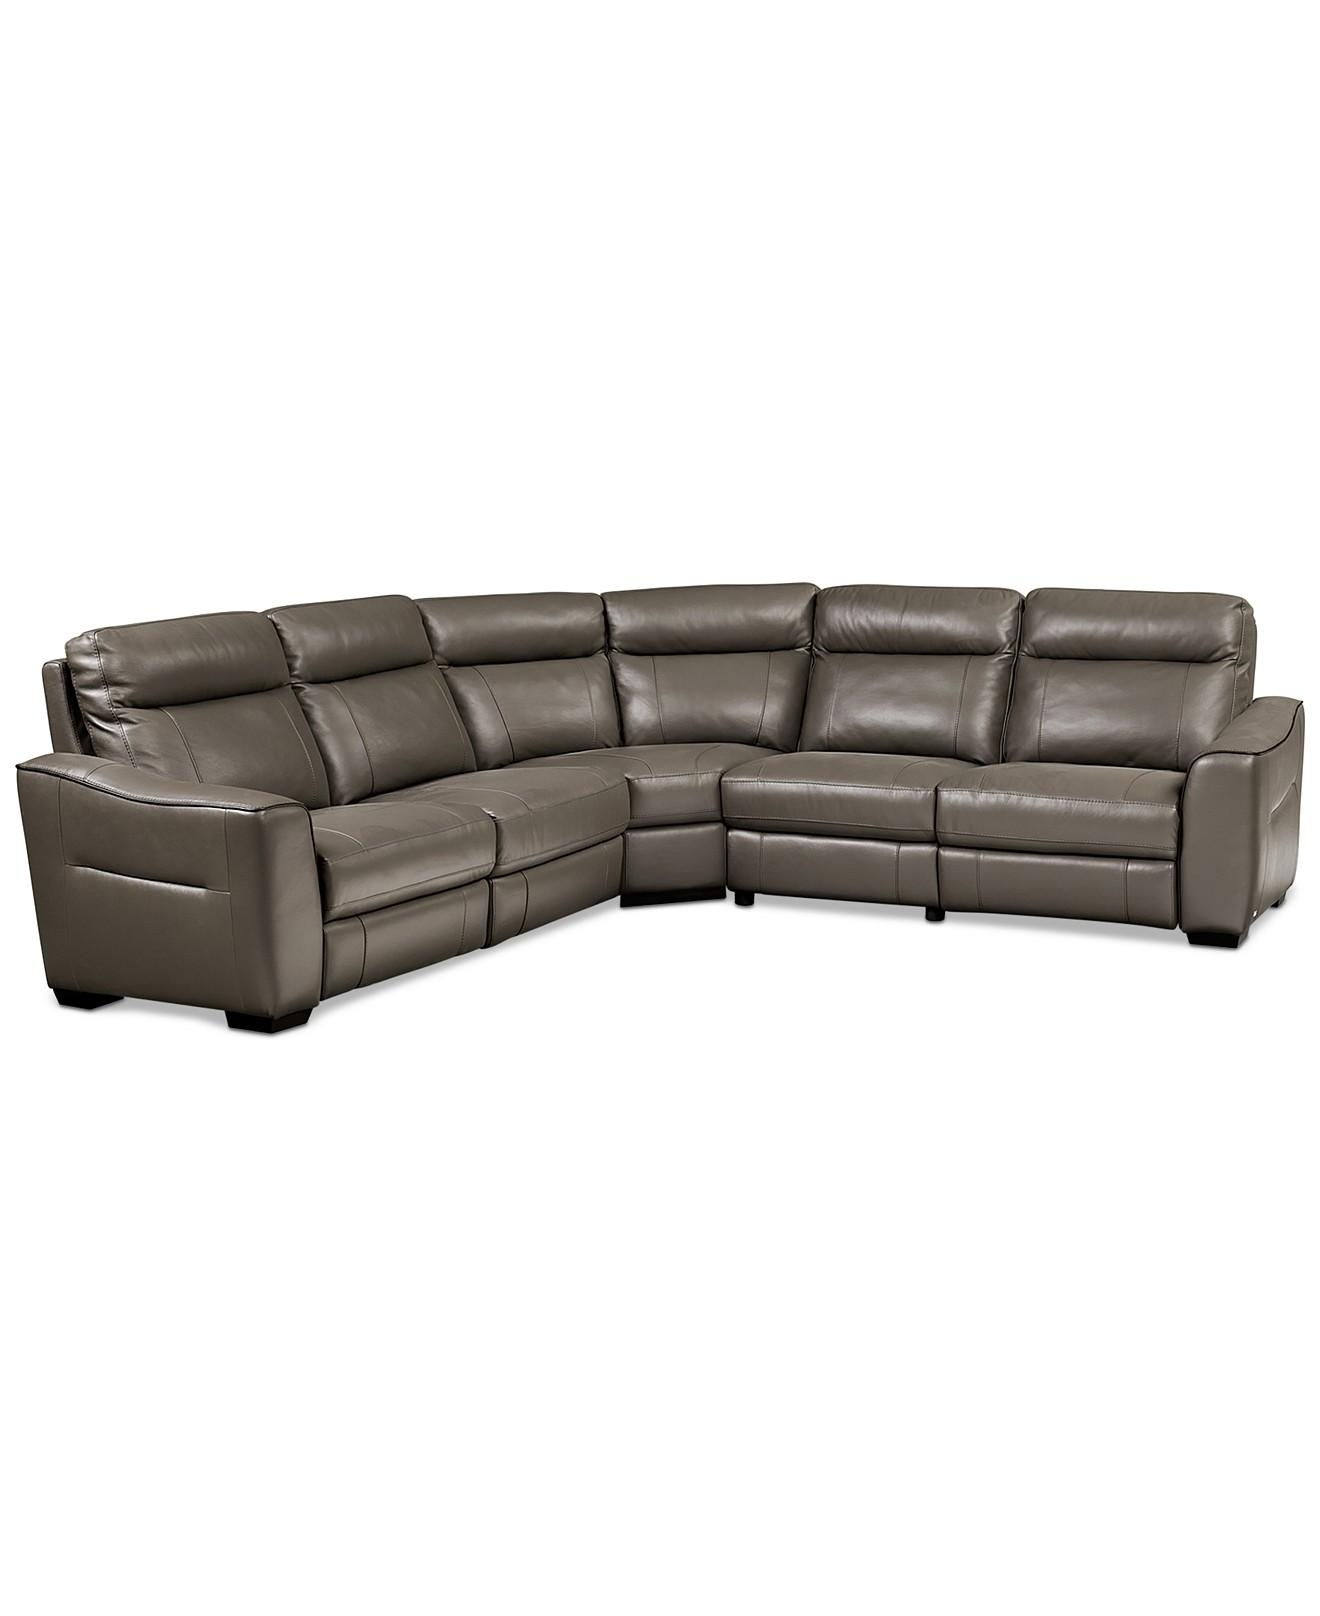 Sofas Center : Macys Leather Sofas For Salemacys Power Motion Regarding Macys Leather Sofas Sectionals (View 15 of 20)